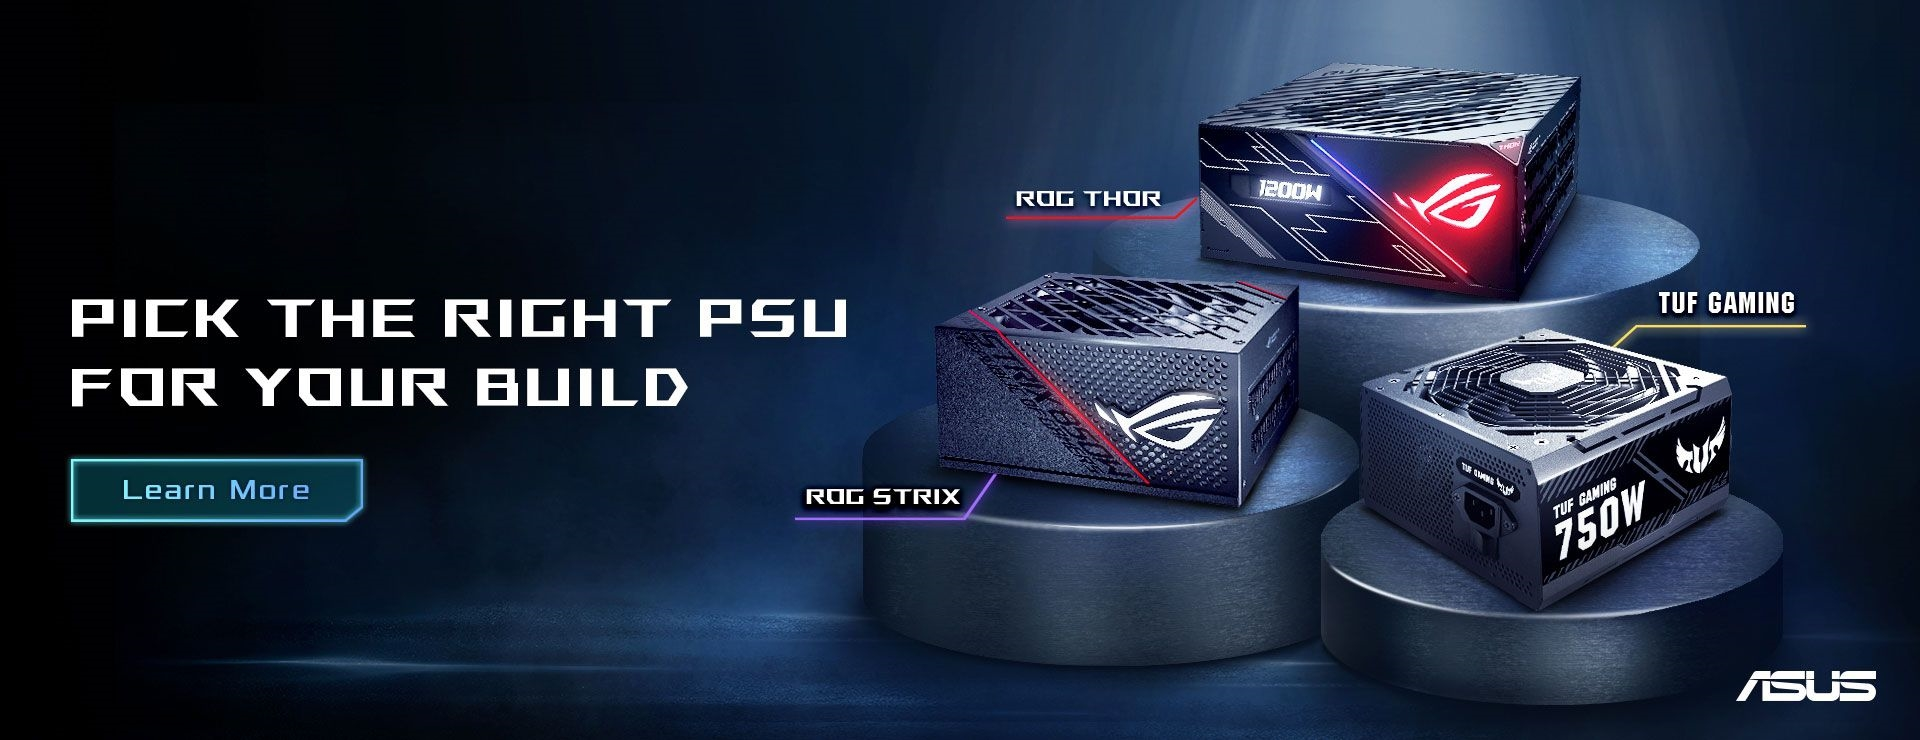 Pick the right PSU for your build